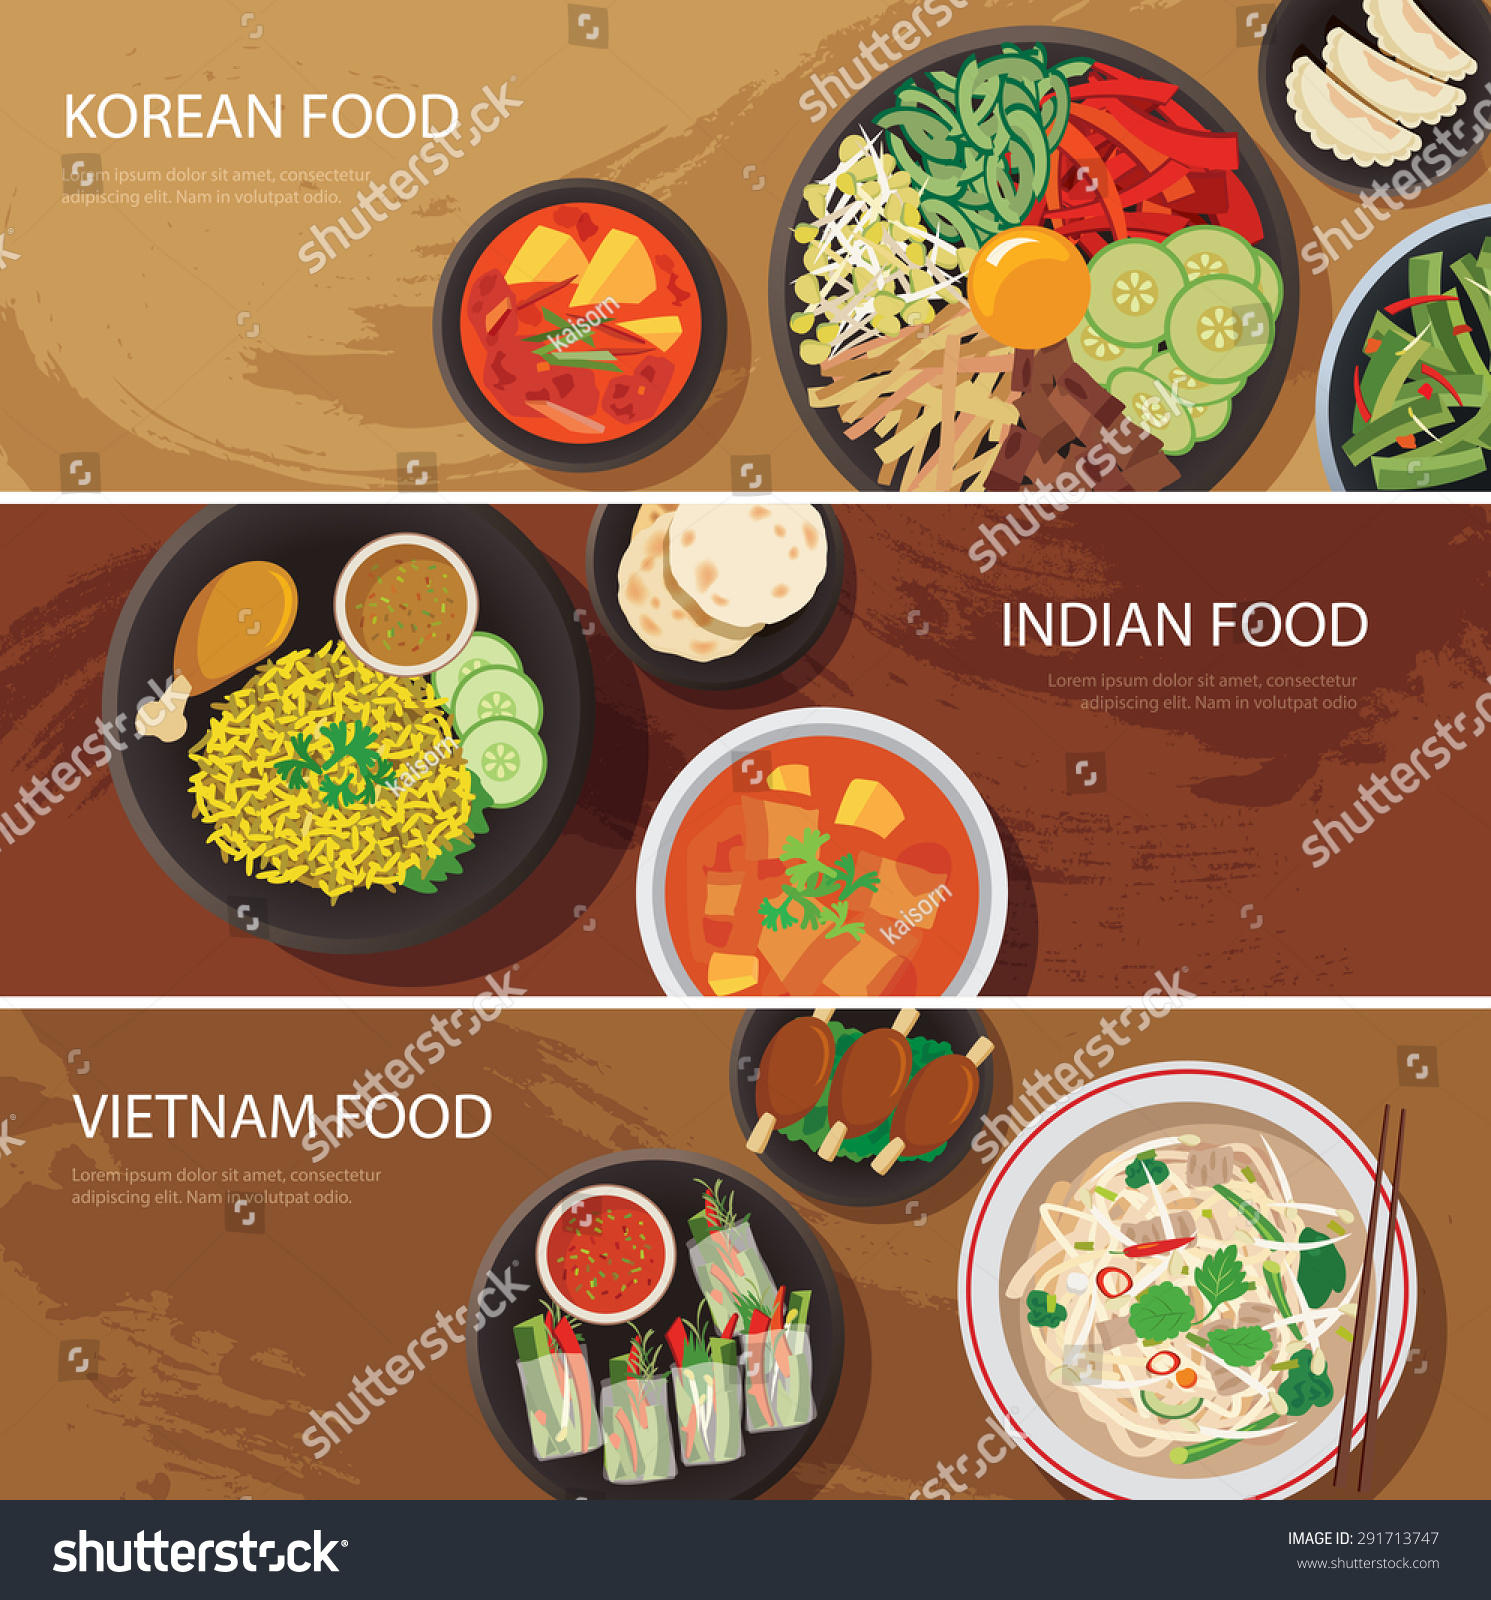 chinese food banner design - photo #9